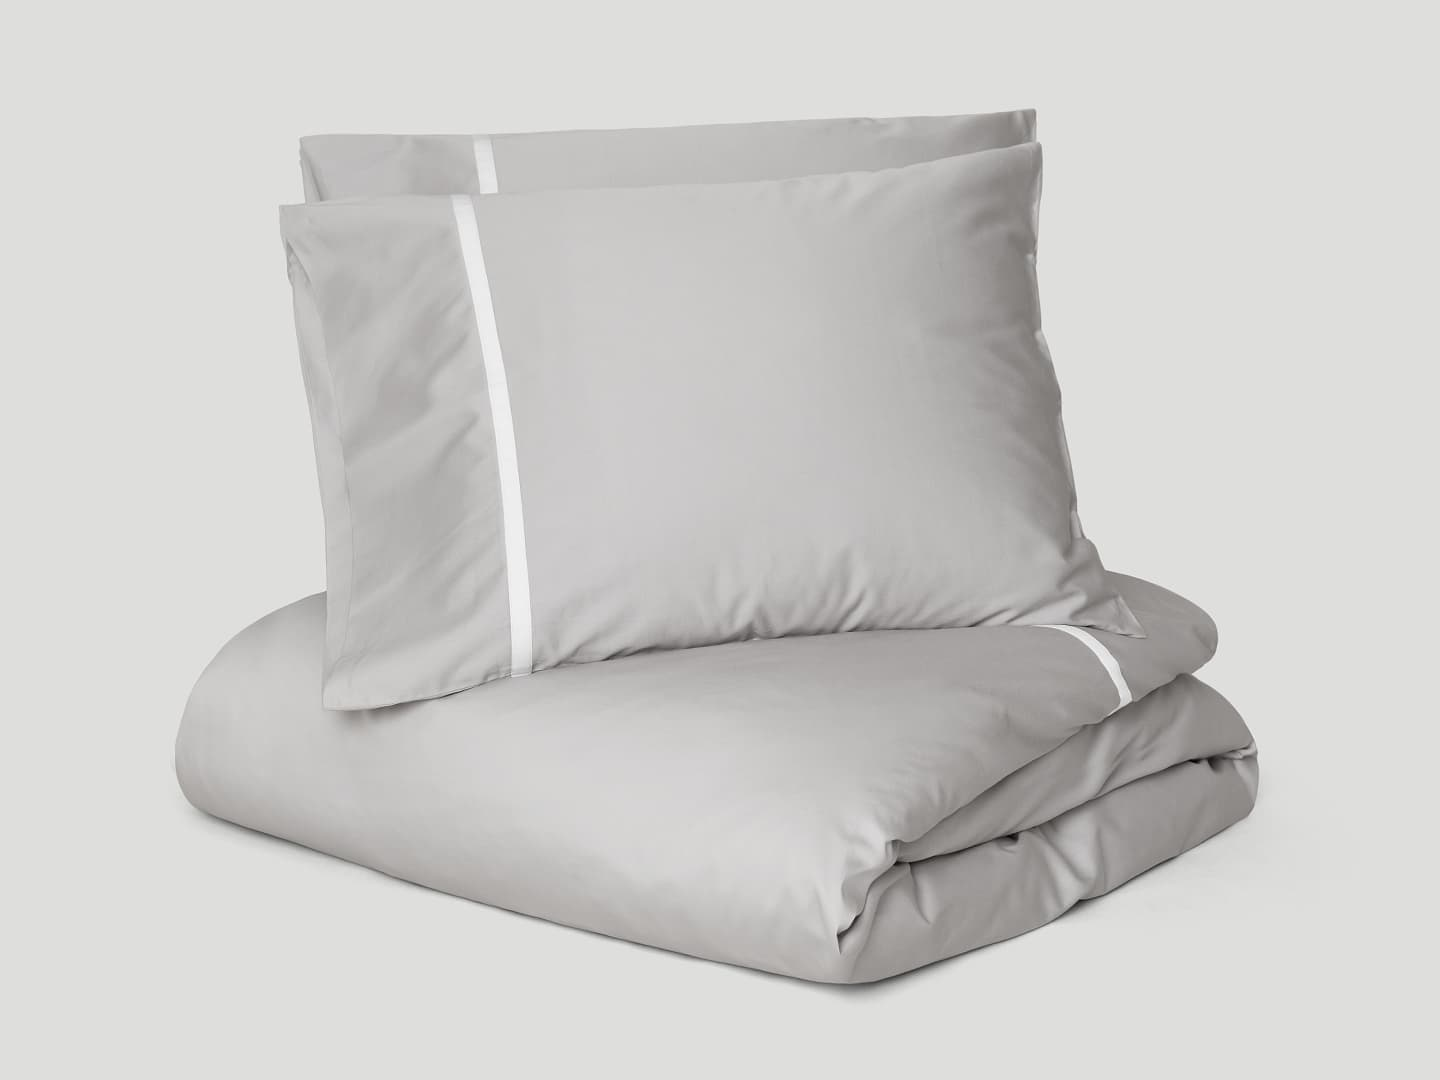 Duvet Cover Gatt - Concrete Grey